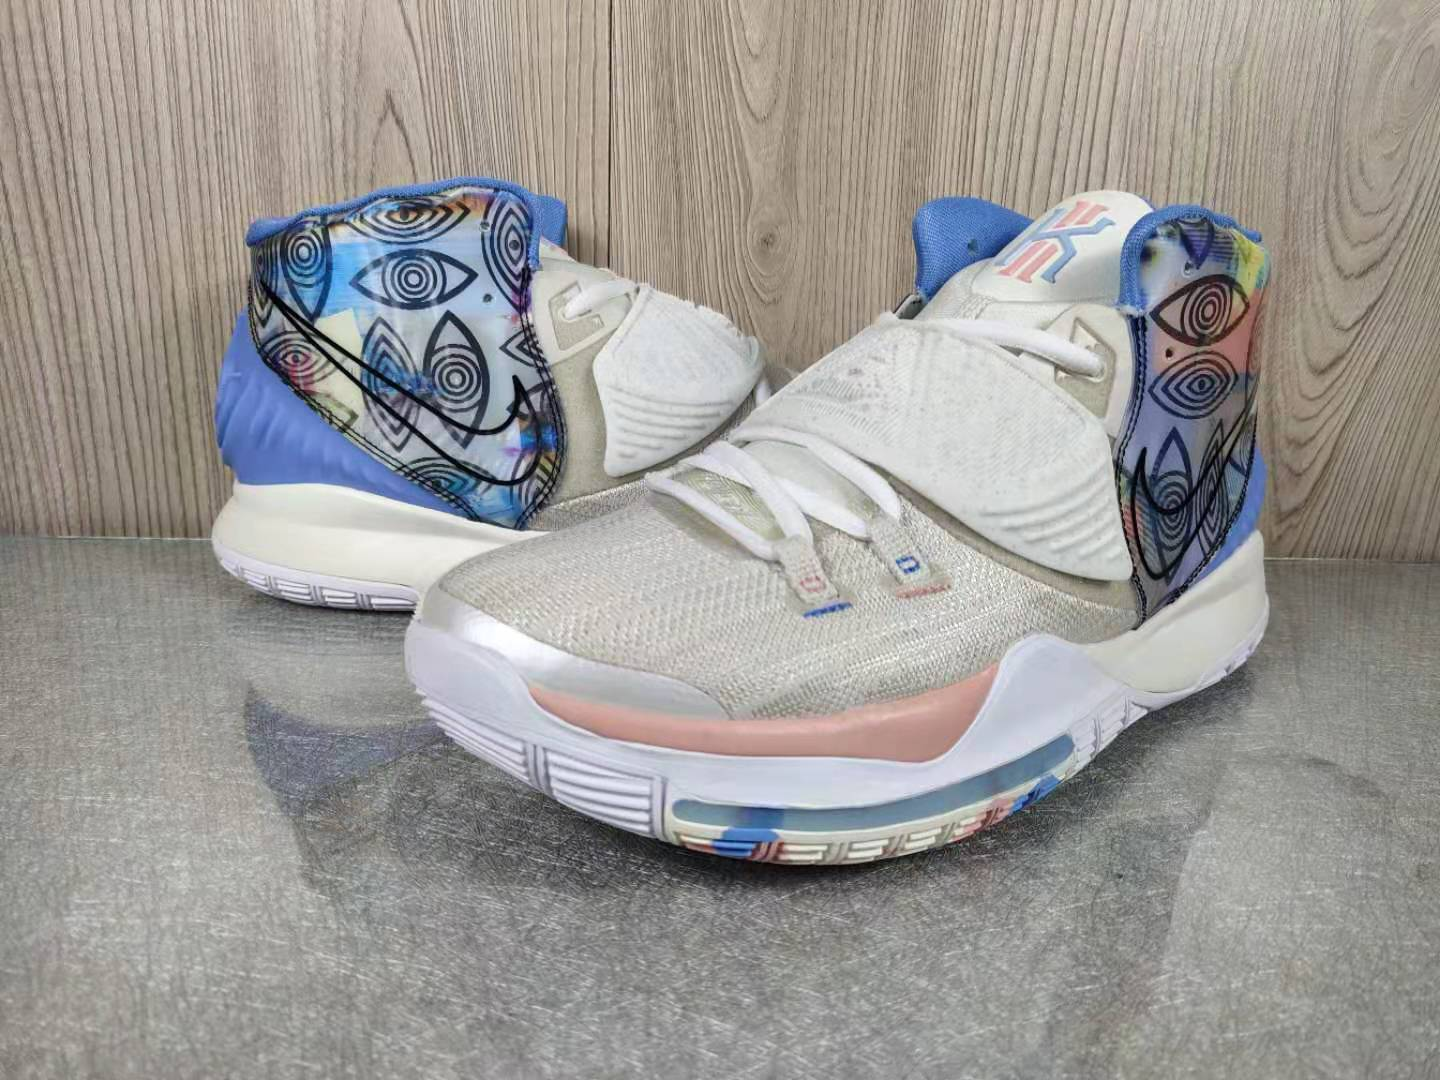 2019 Men Nike Kyrie Irving 6 Grey Blue Pink Shoes